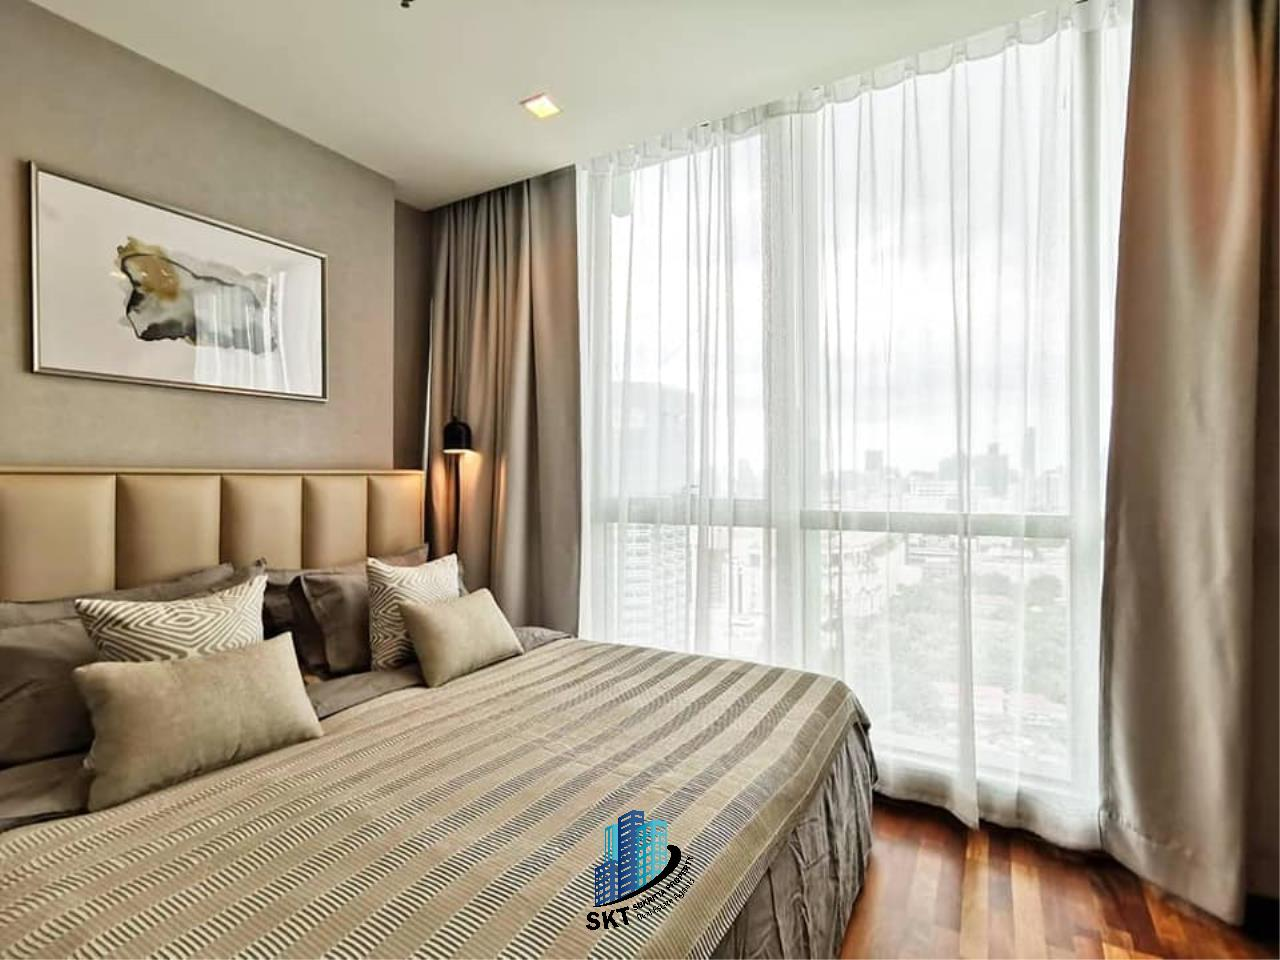 Sukritta Property Agency's WISH SIGNATURE MIDTOWN SIAM CONDO NEAR BTS RATCHATHEWI 6